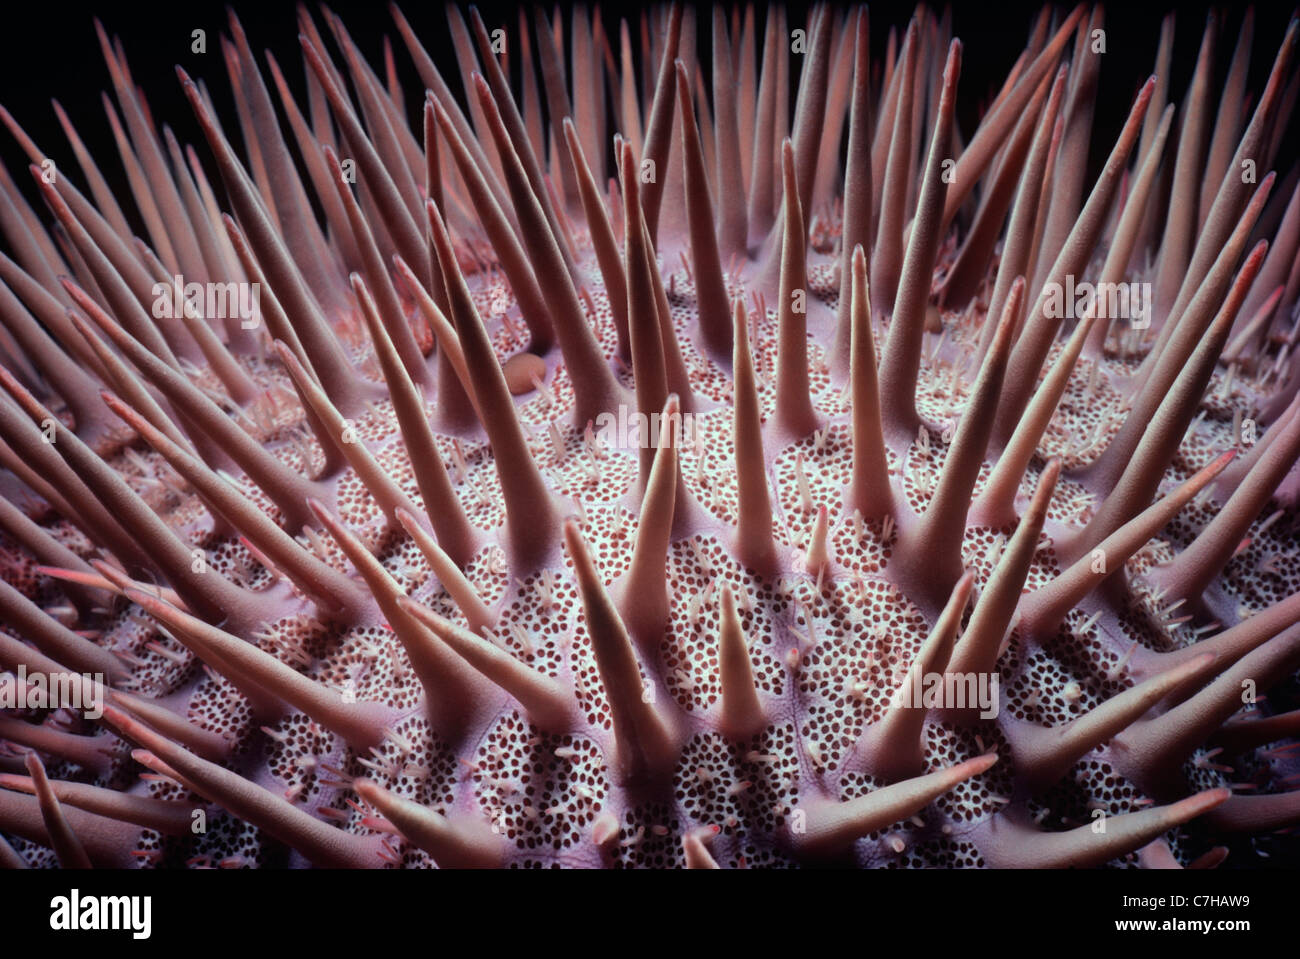 Poisonous Spines of Crown-of-Thorns Starfish (Acanthaster planci). Ras Nasrani, Egypt, Red Sea - Stock Image